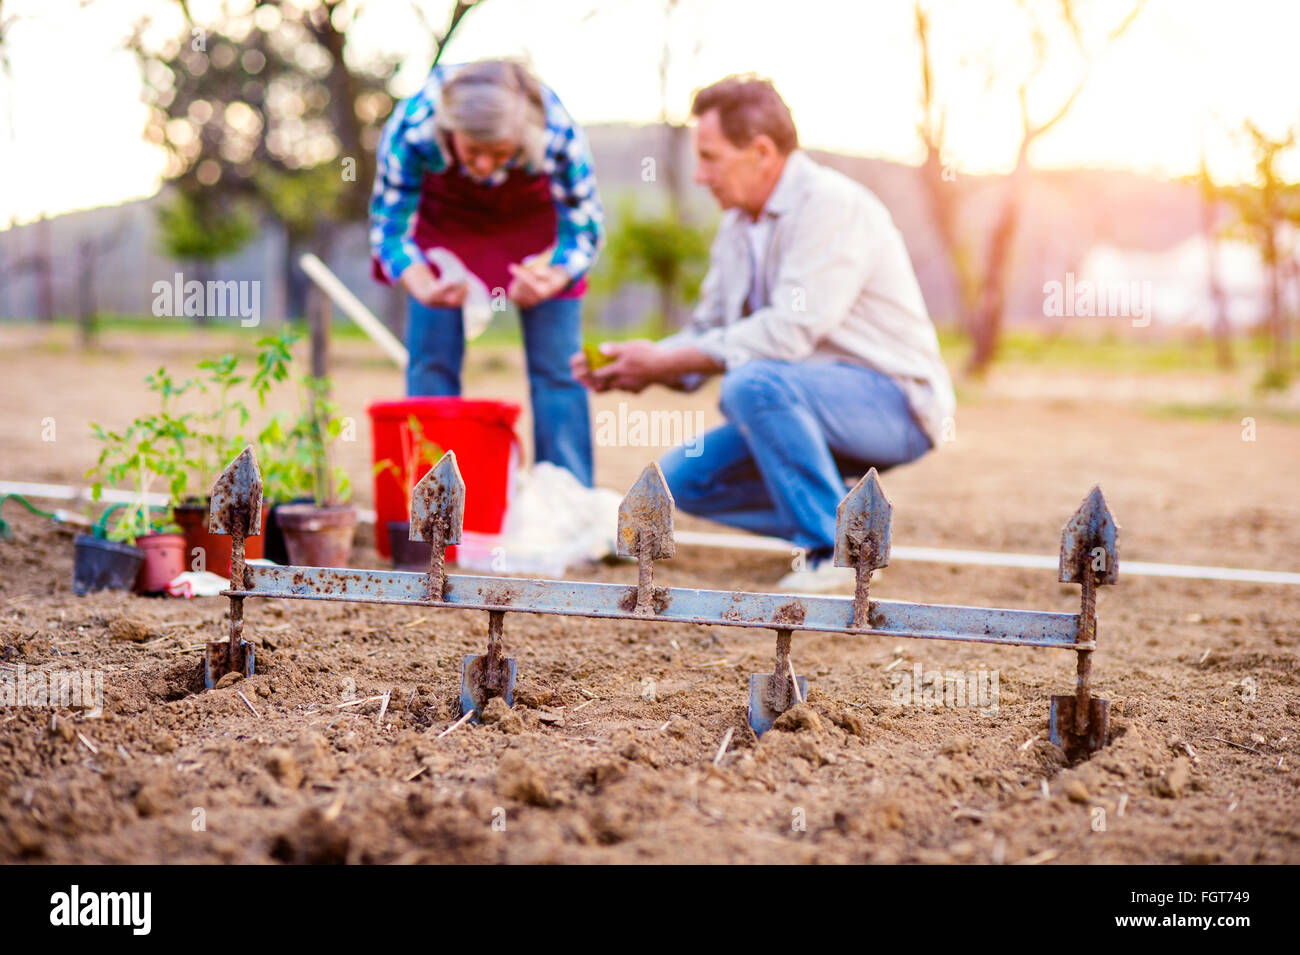 Senior woman and man plowing and planting seeds, garden - Stock Image